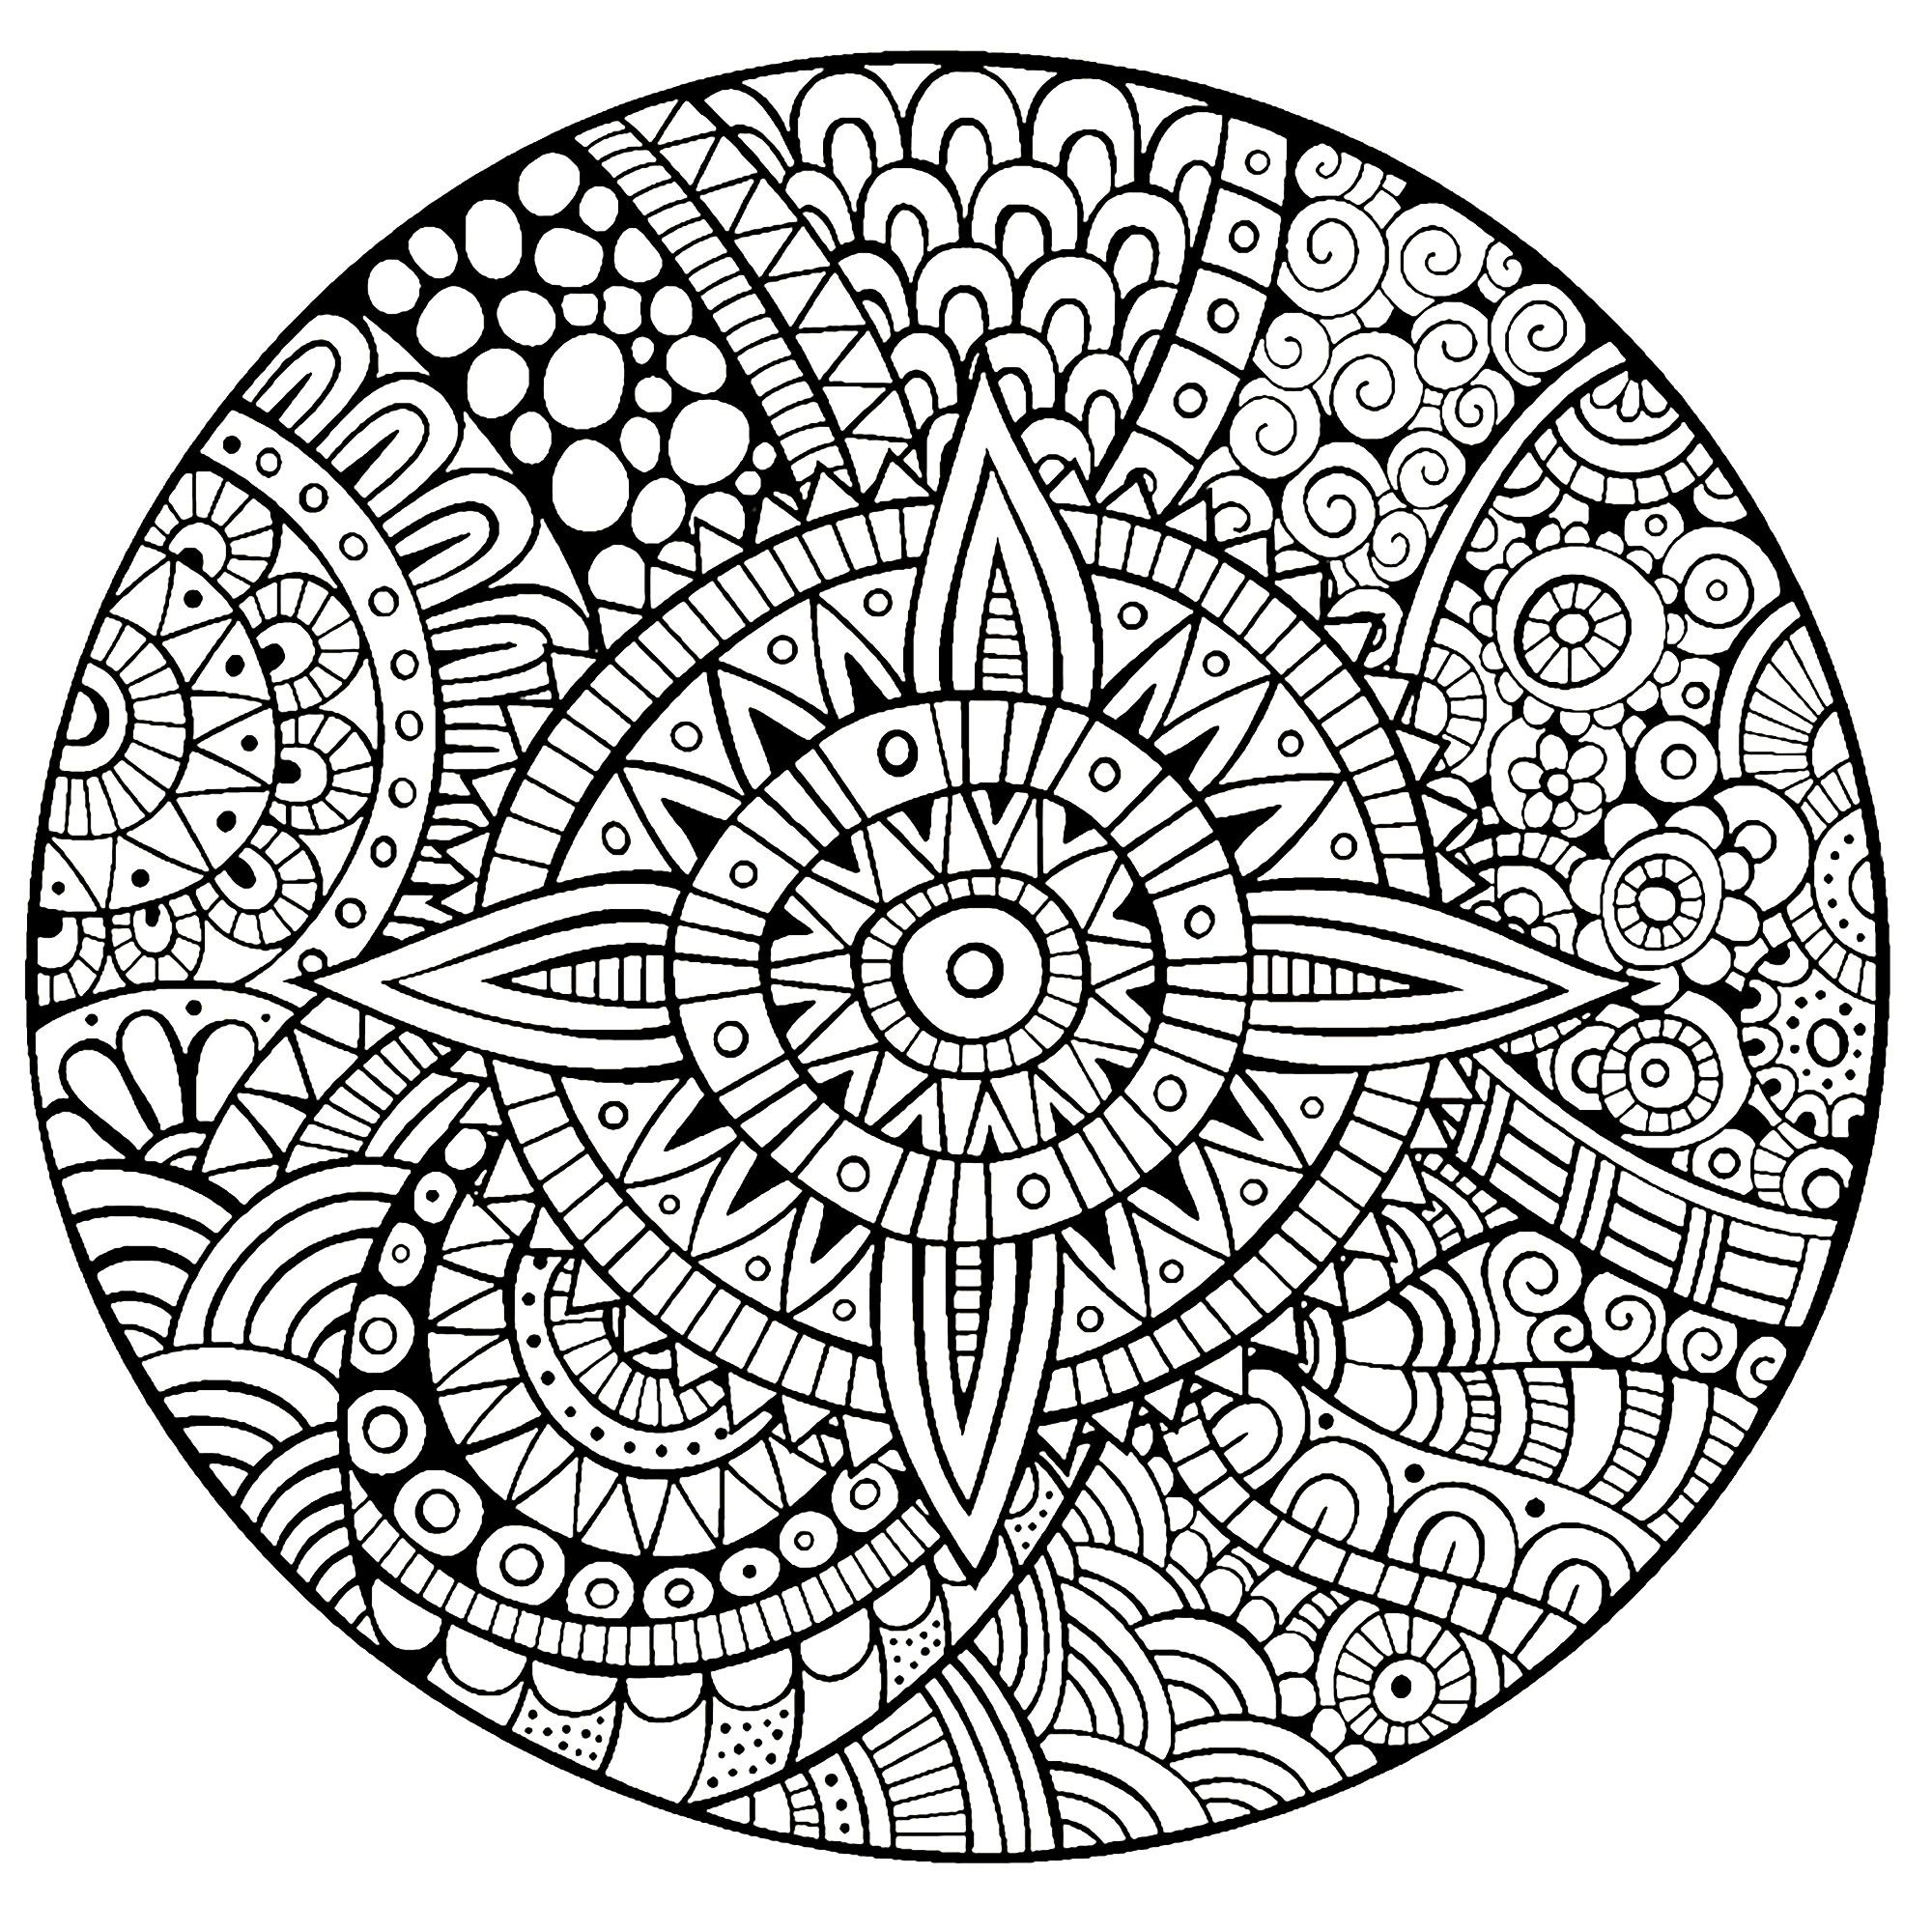 Coloring Pages Games Free Online Inspirational Elegant Coloring Games Line Disney Col Unicorn Coloring Pages Bear Coloring Pages Coloring Pages Inspirational